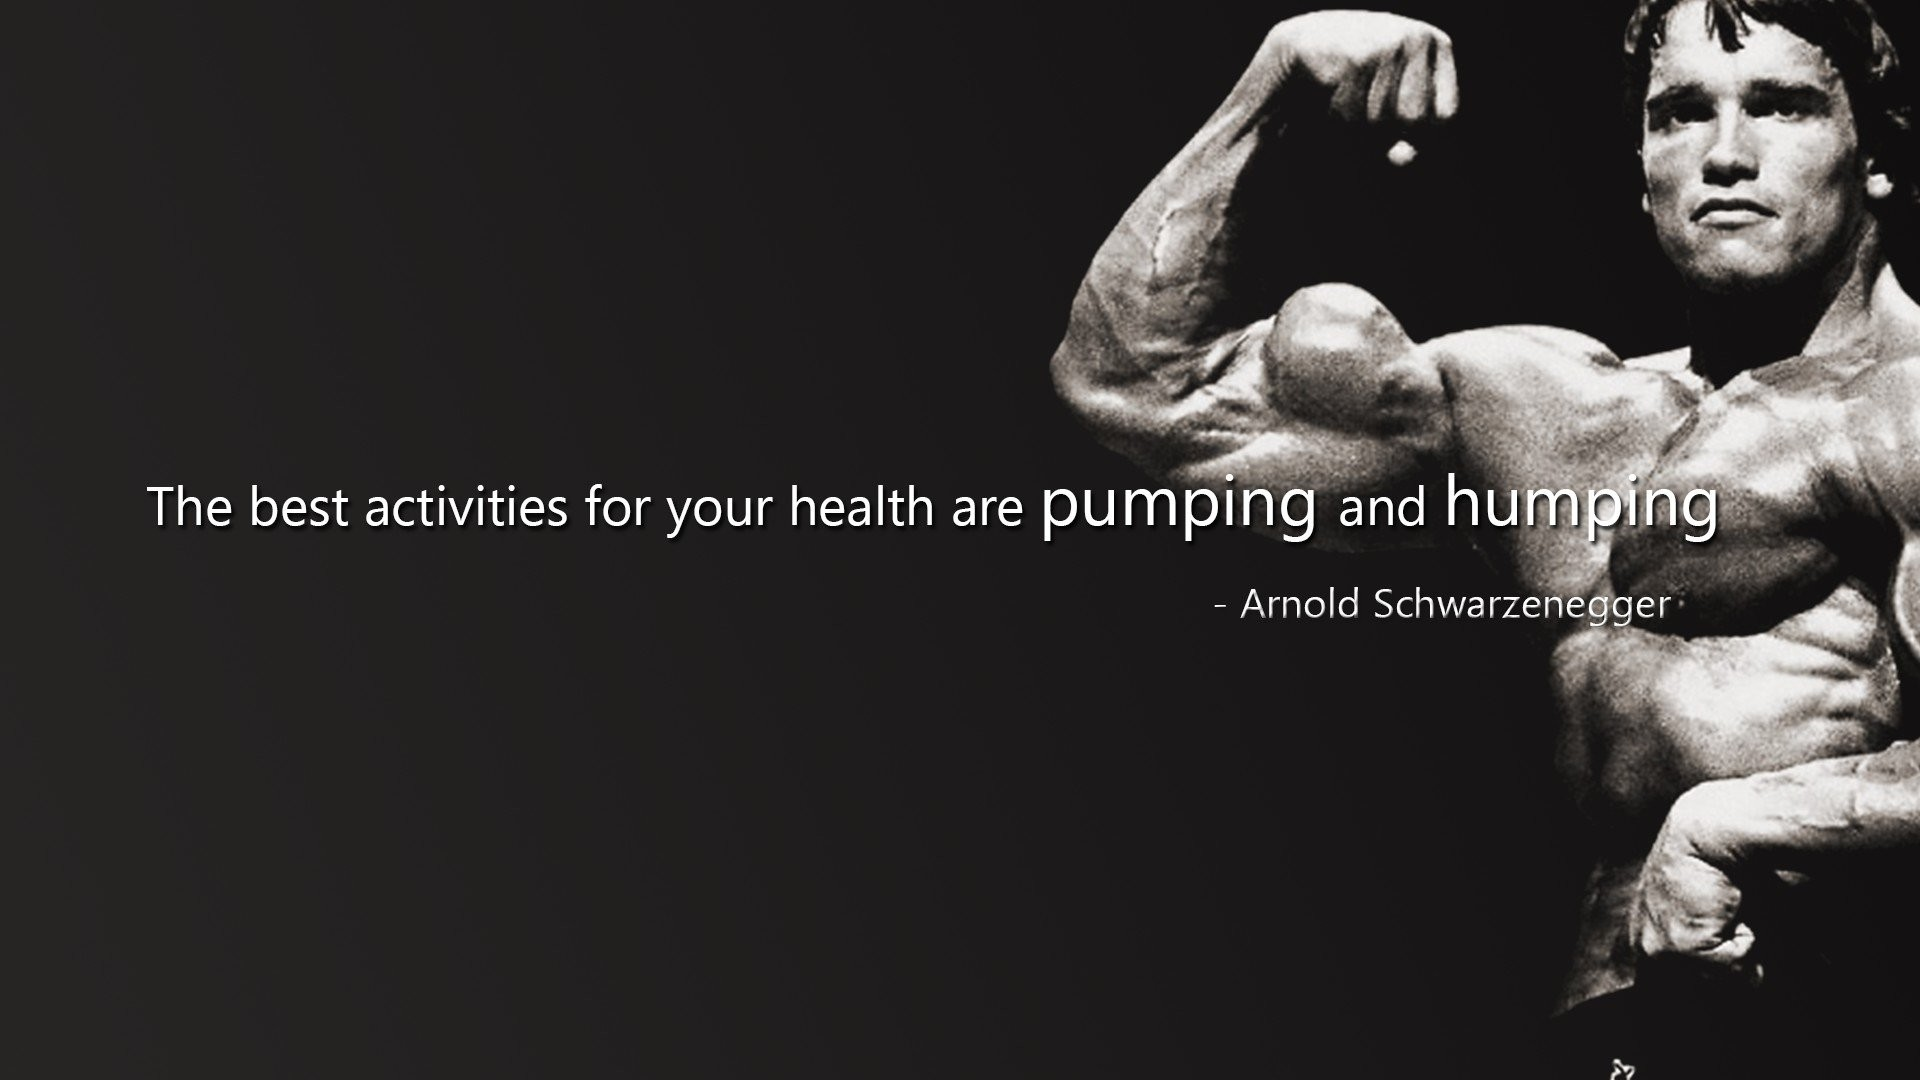 muscle muscles weight lifting Bodybuilding (24) wallpaper background .